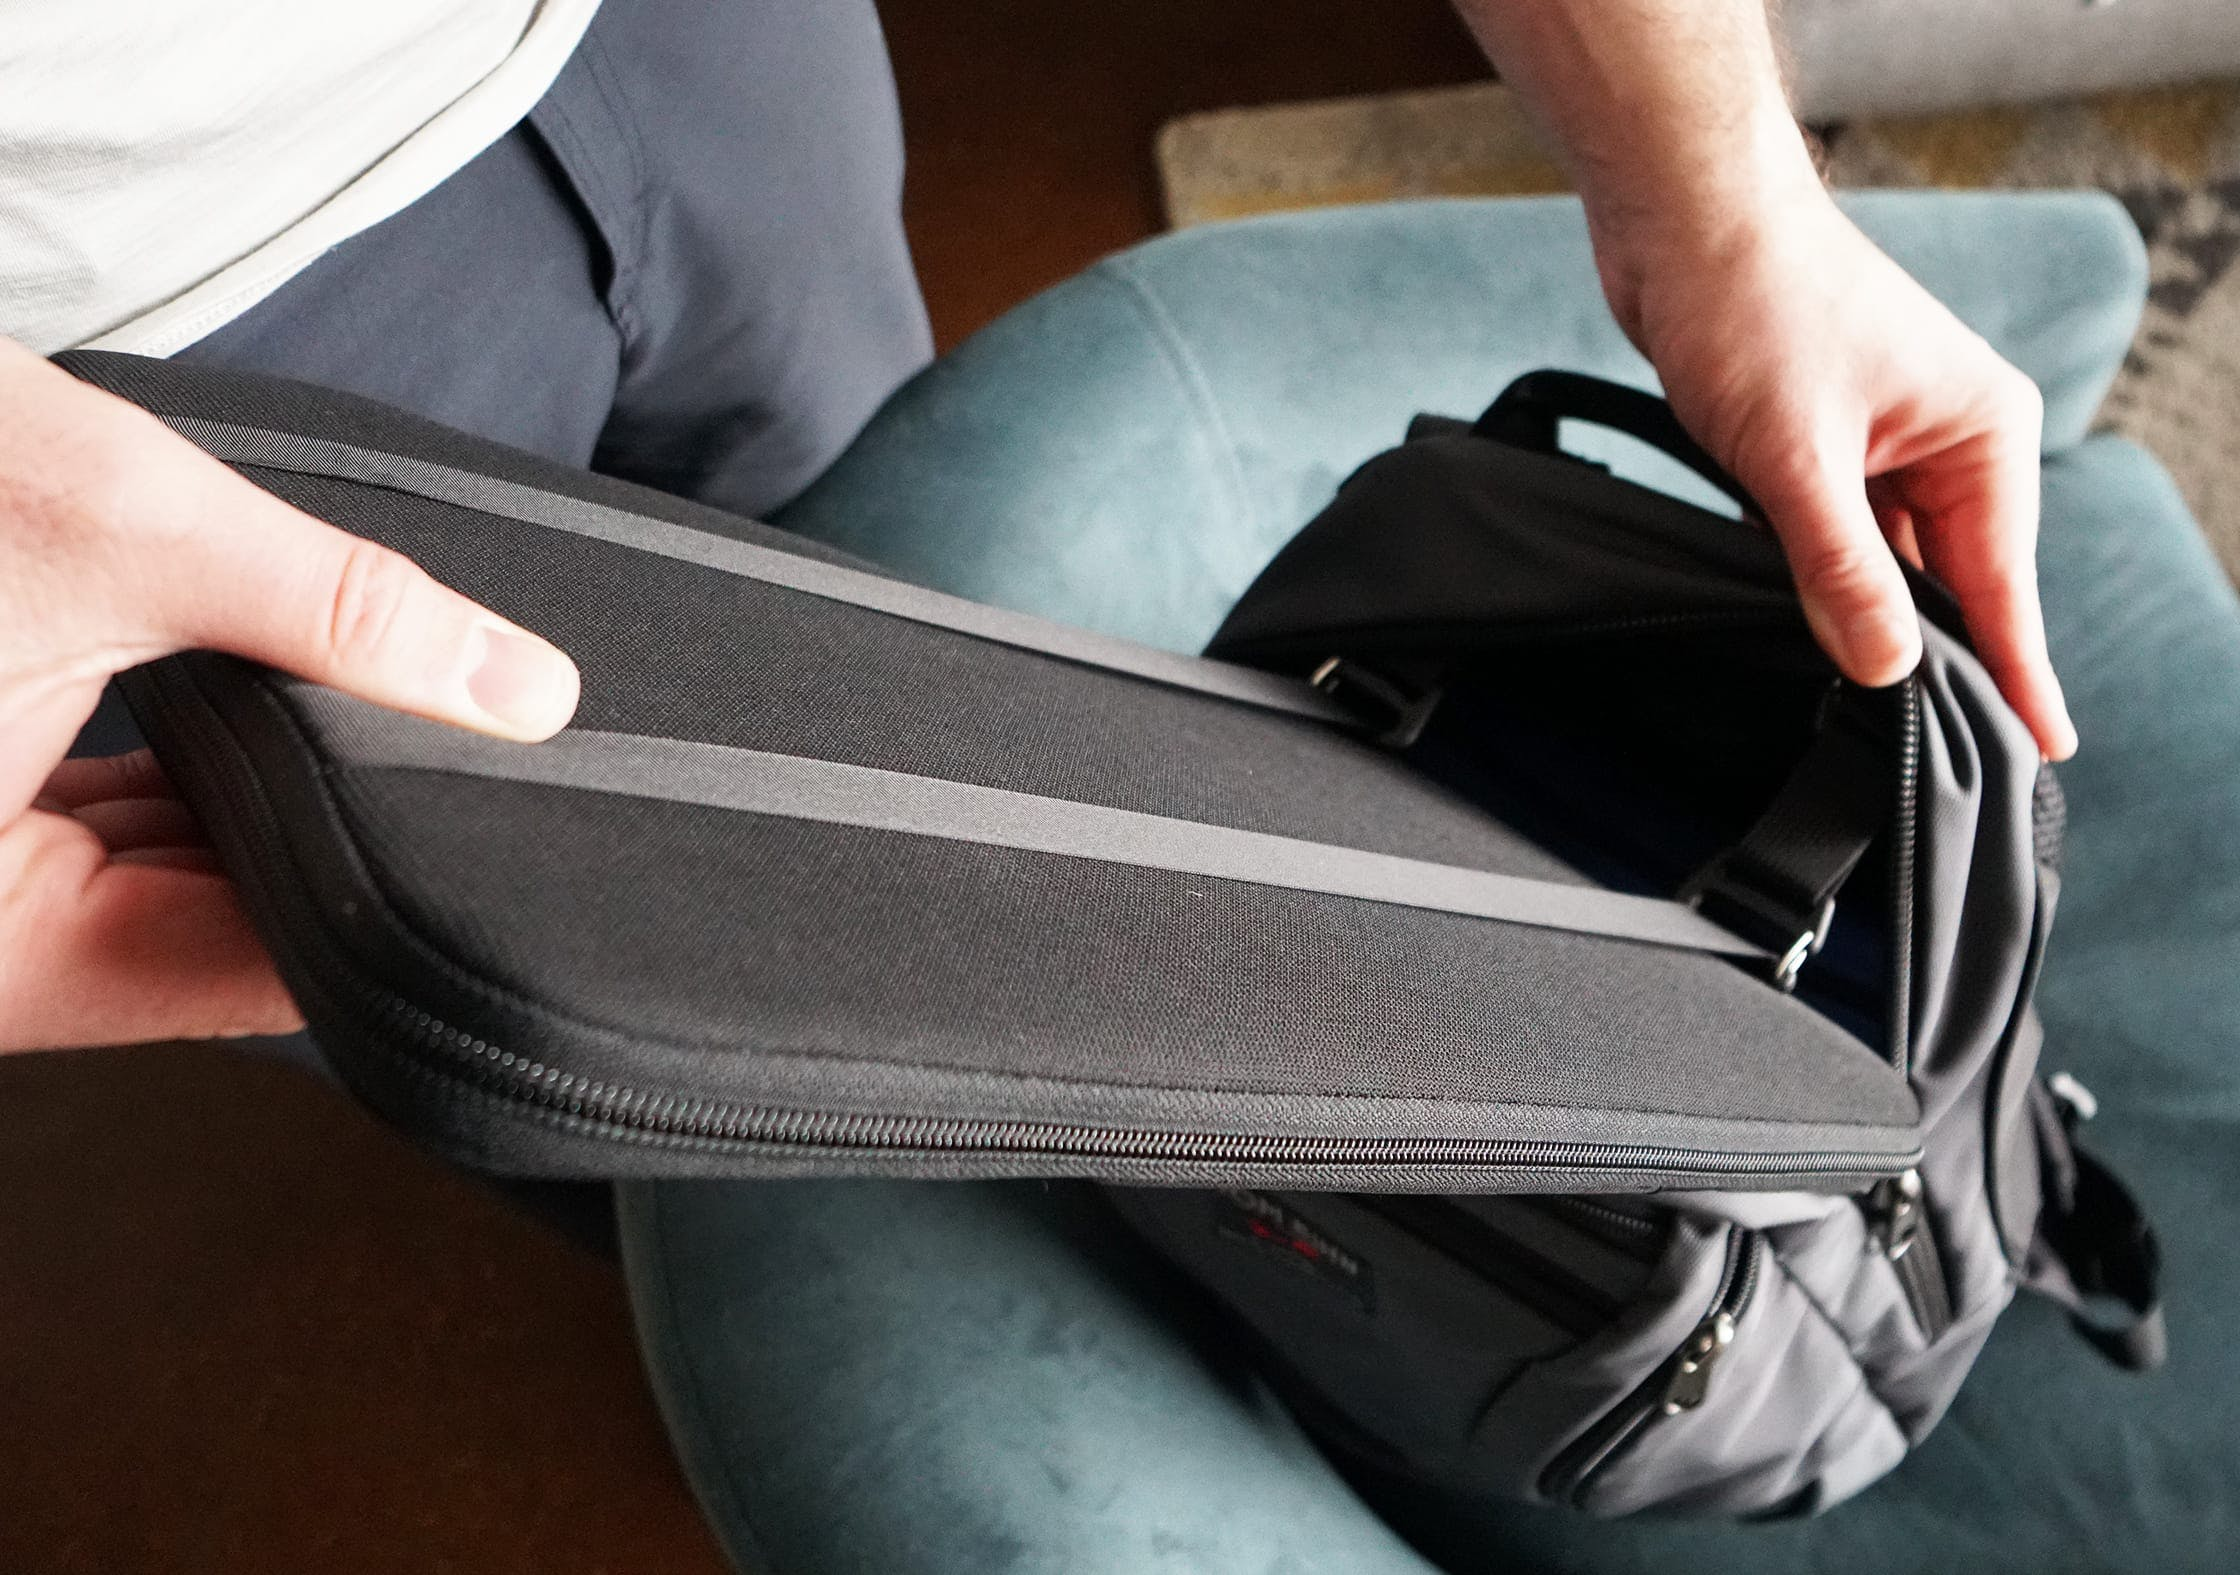 Tom Bihn Synapse 25 Cache In Action